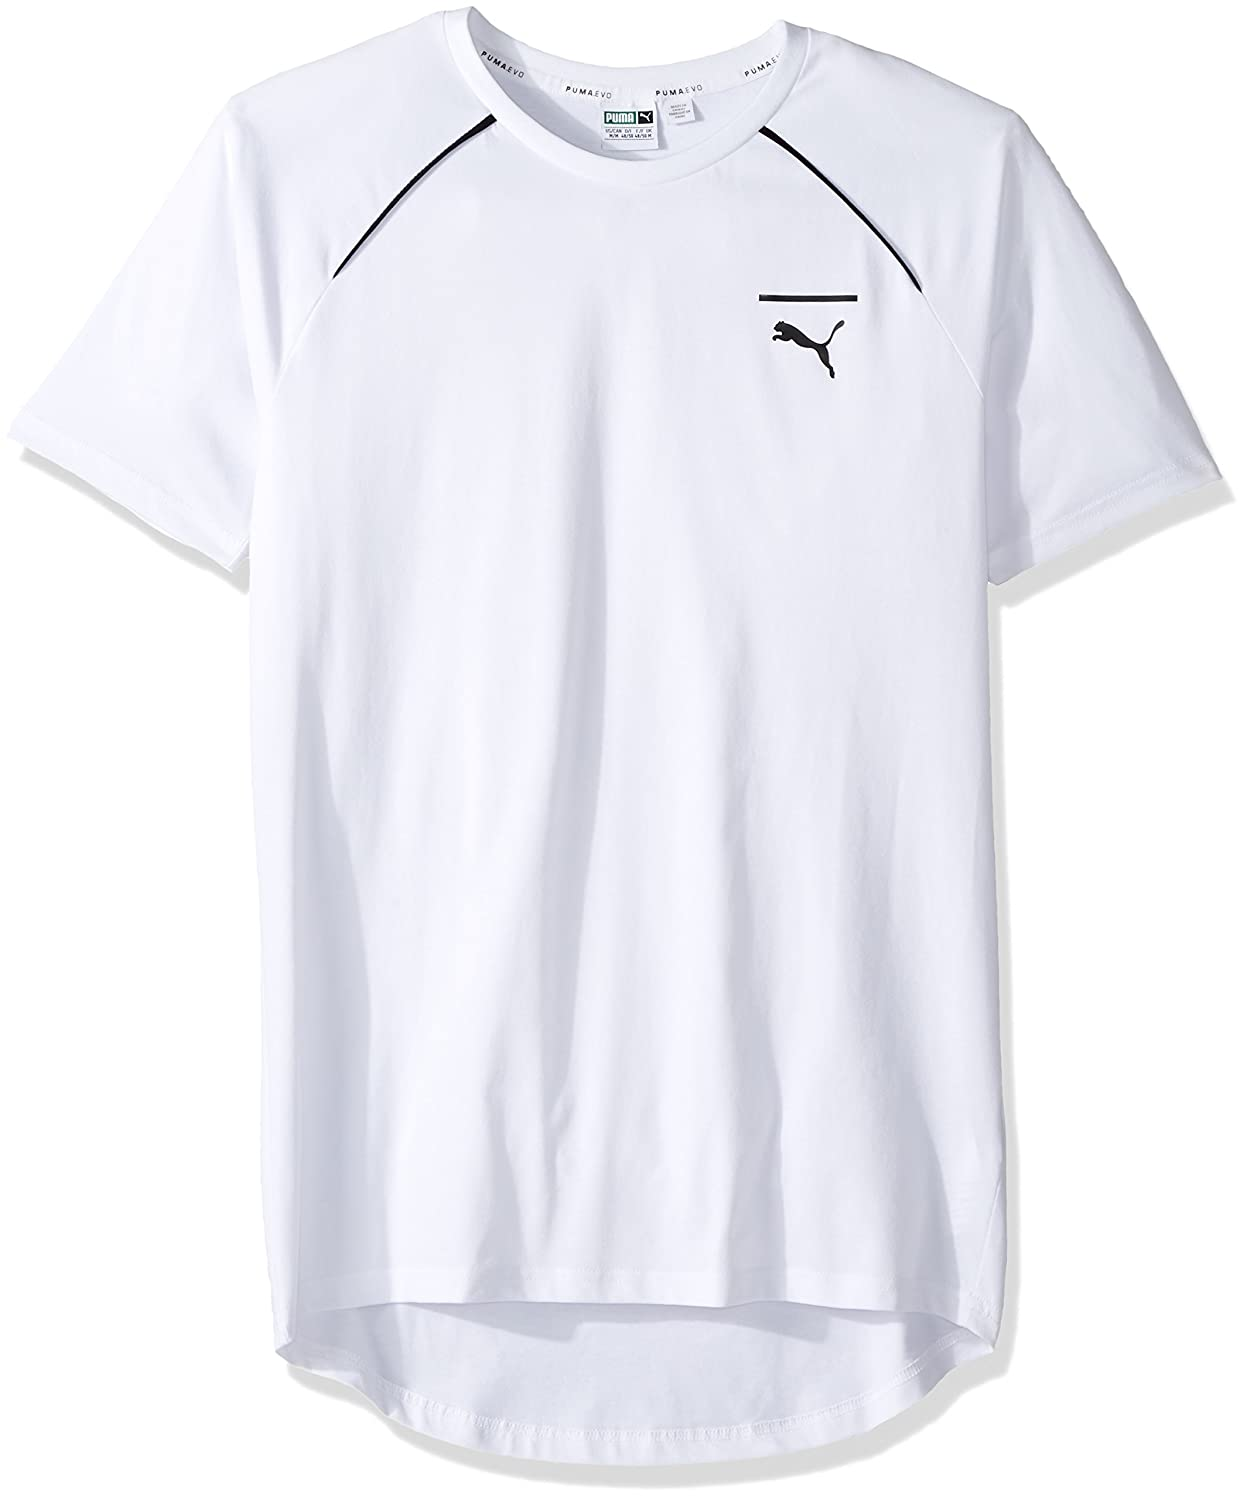 PUMA Men& 039;s Evo Core T-Shirt